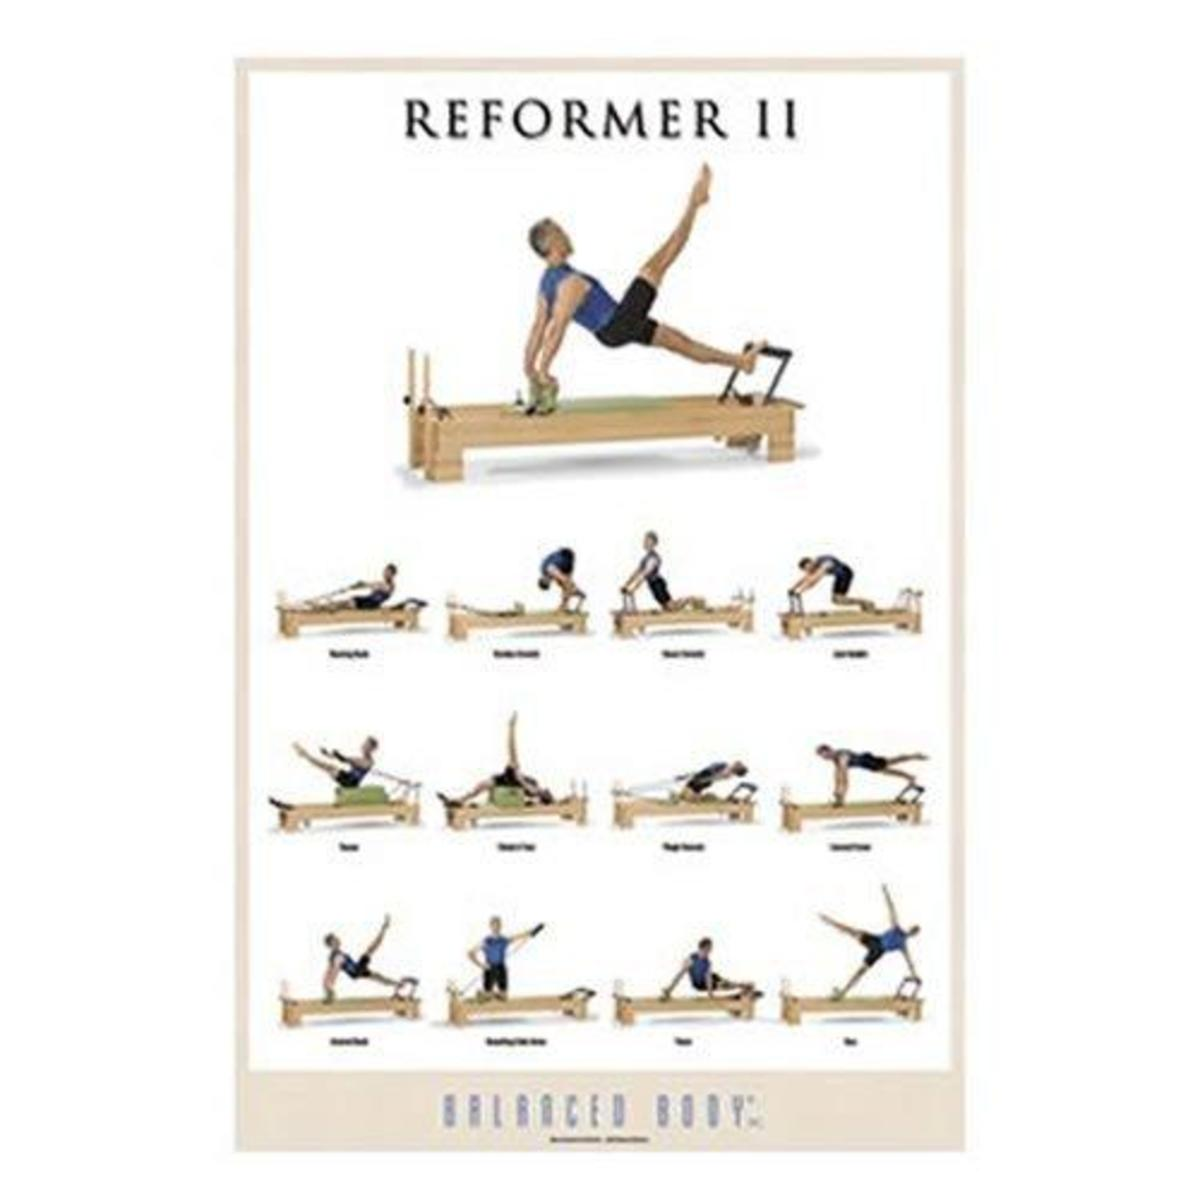 reformer pilates poster showcasing over 9 different exercise movements